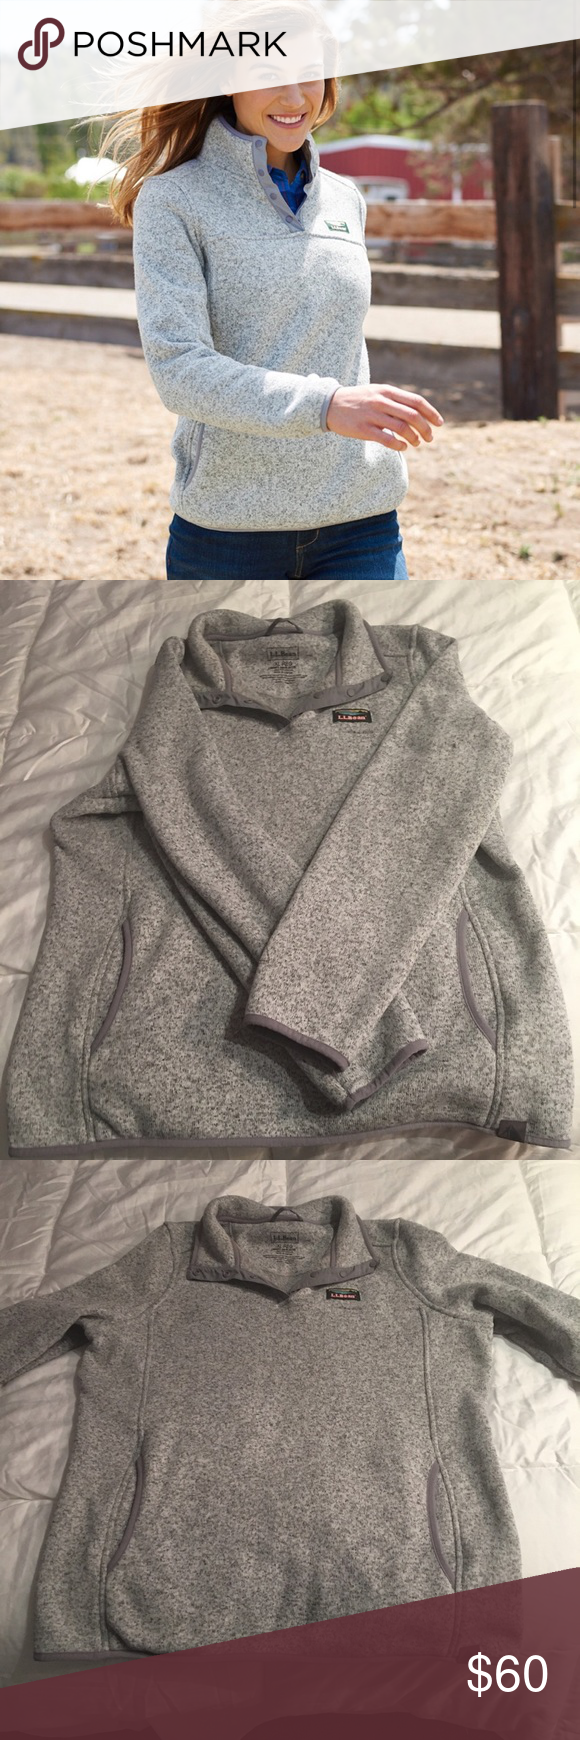 LL Bean Sweater Fleece Pullover | Pullover, Comfy and Conditioning